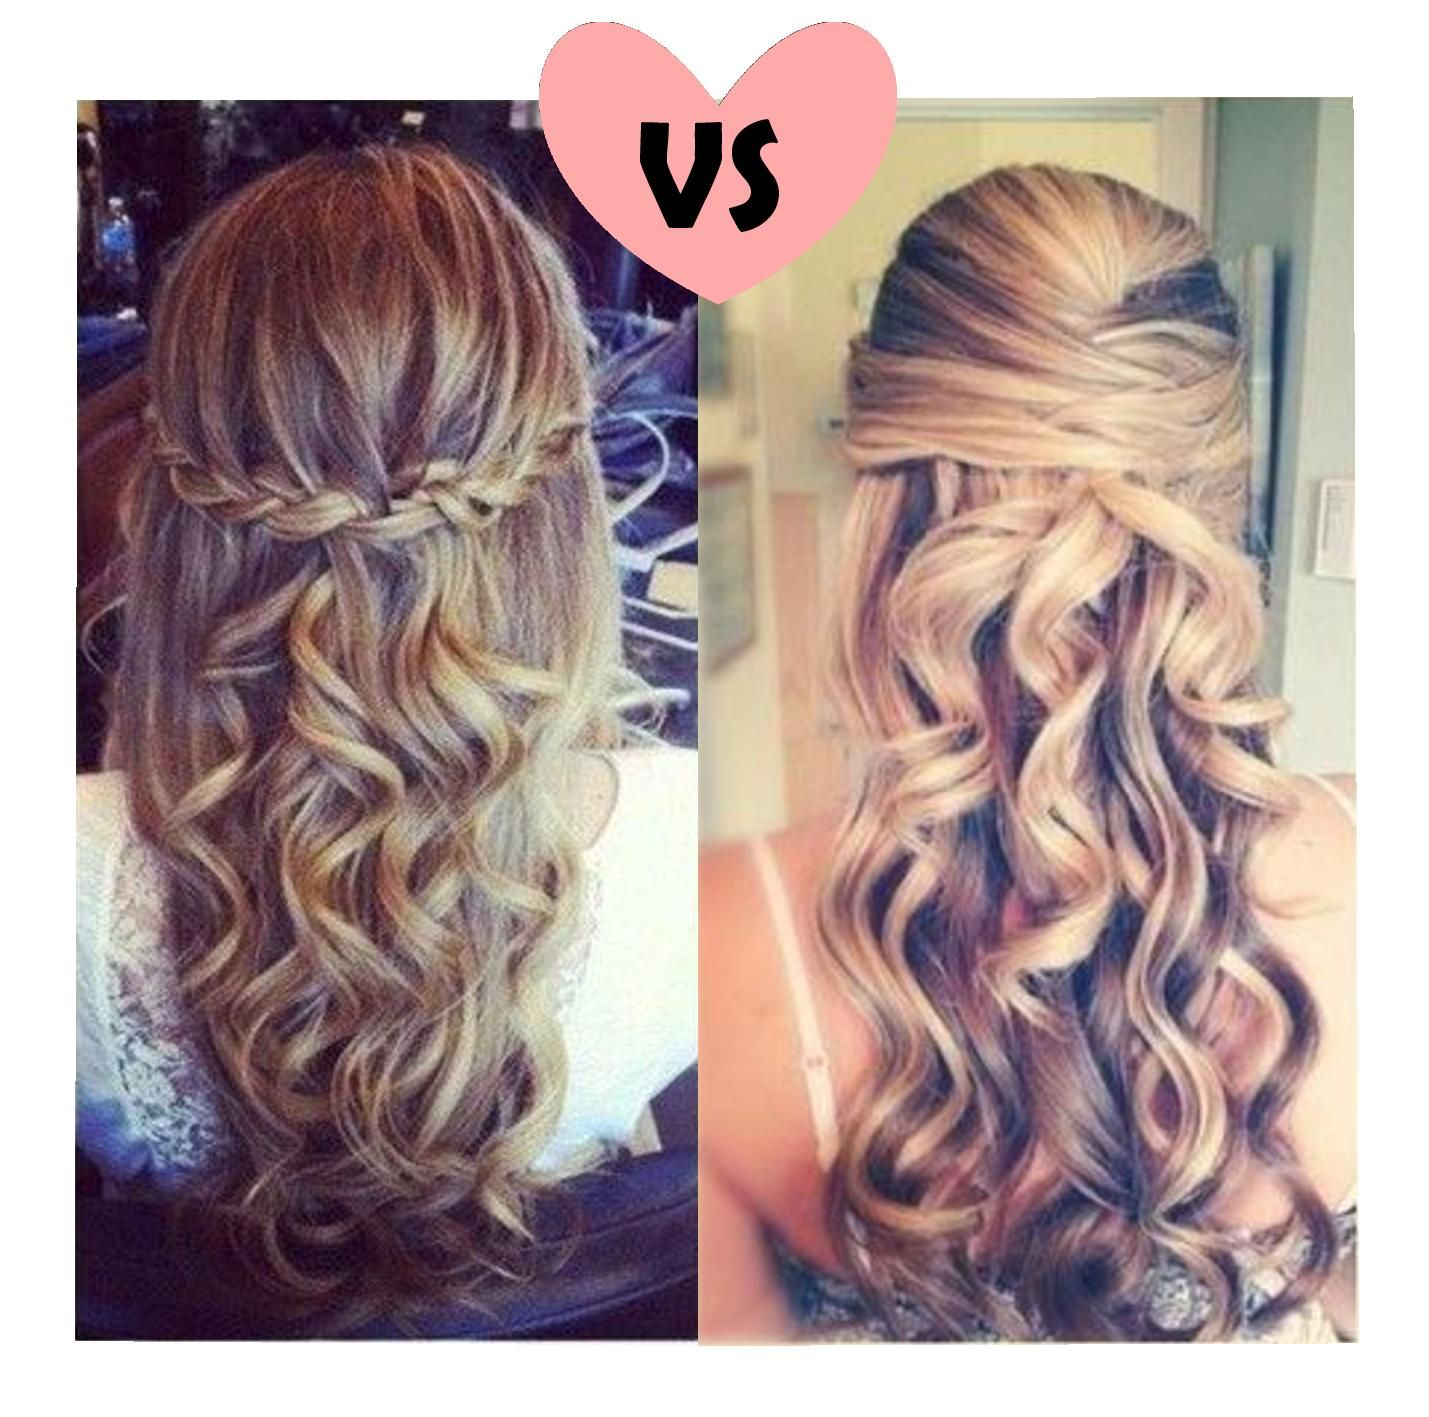 Cute Easy Hairstyles For School Dances : Homecoming or prom hairstyles holster